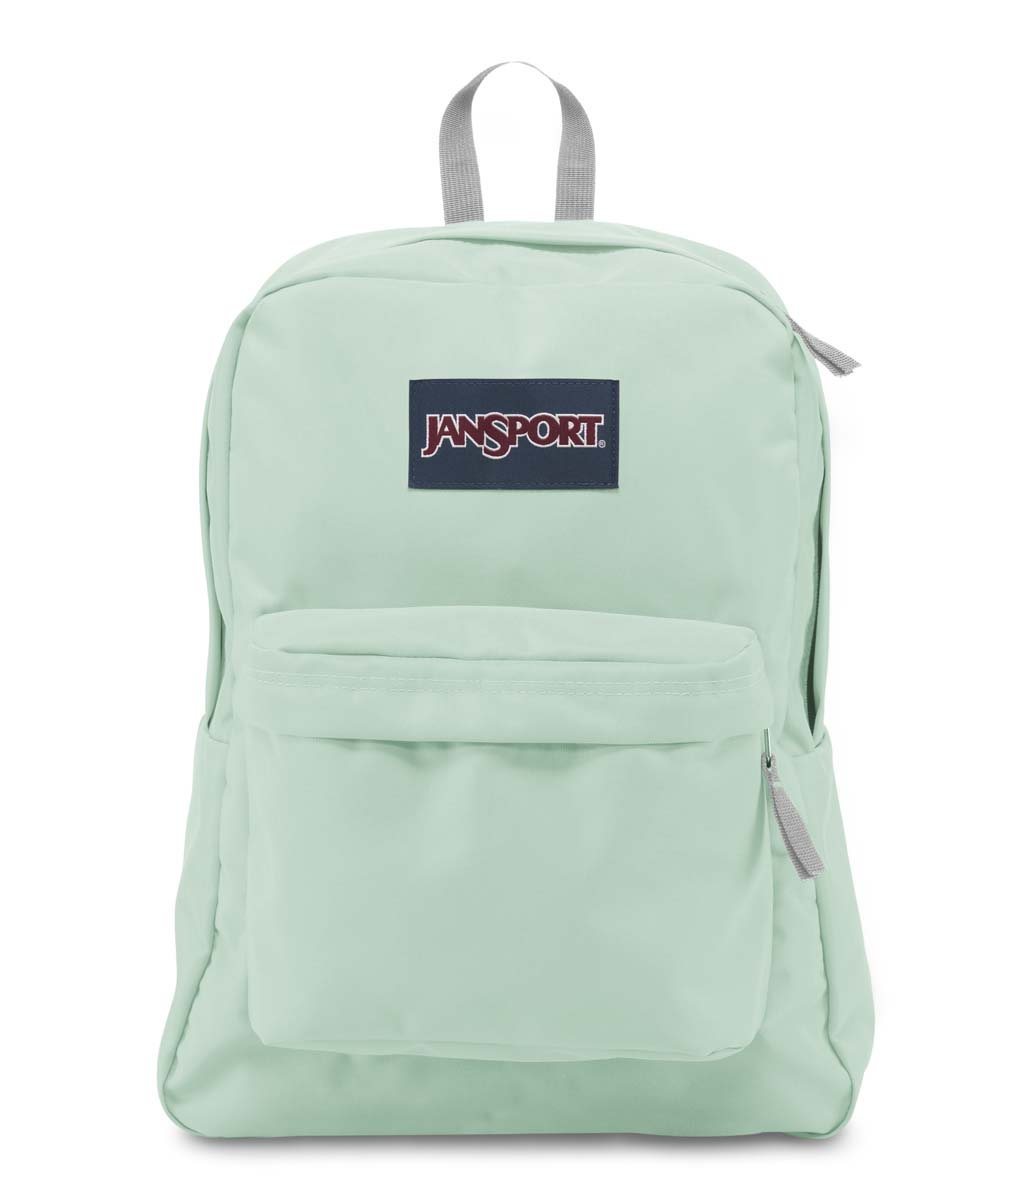 Jansport® backpacks take you anywhere you want to go. From game days to school days to countryside travels, trust your storage to this popular brand. Durability is essential for your backpack, and Jansport® bags feature hearty, quality materials that can stand up to just about anything.